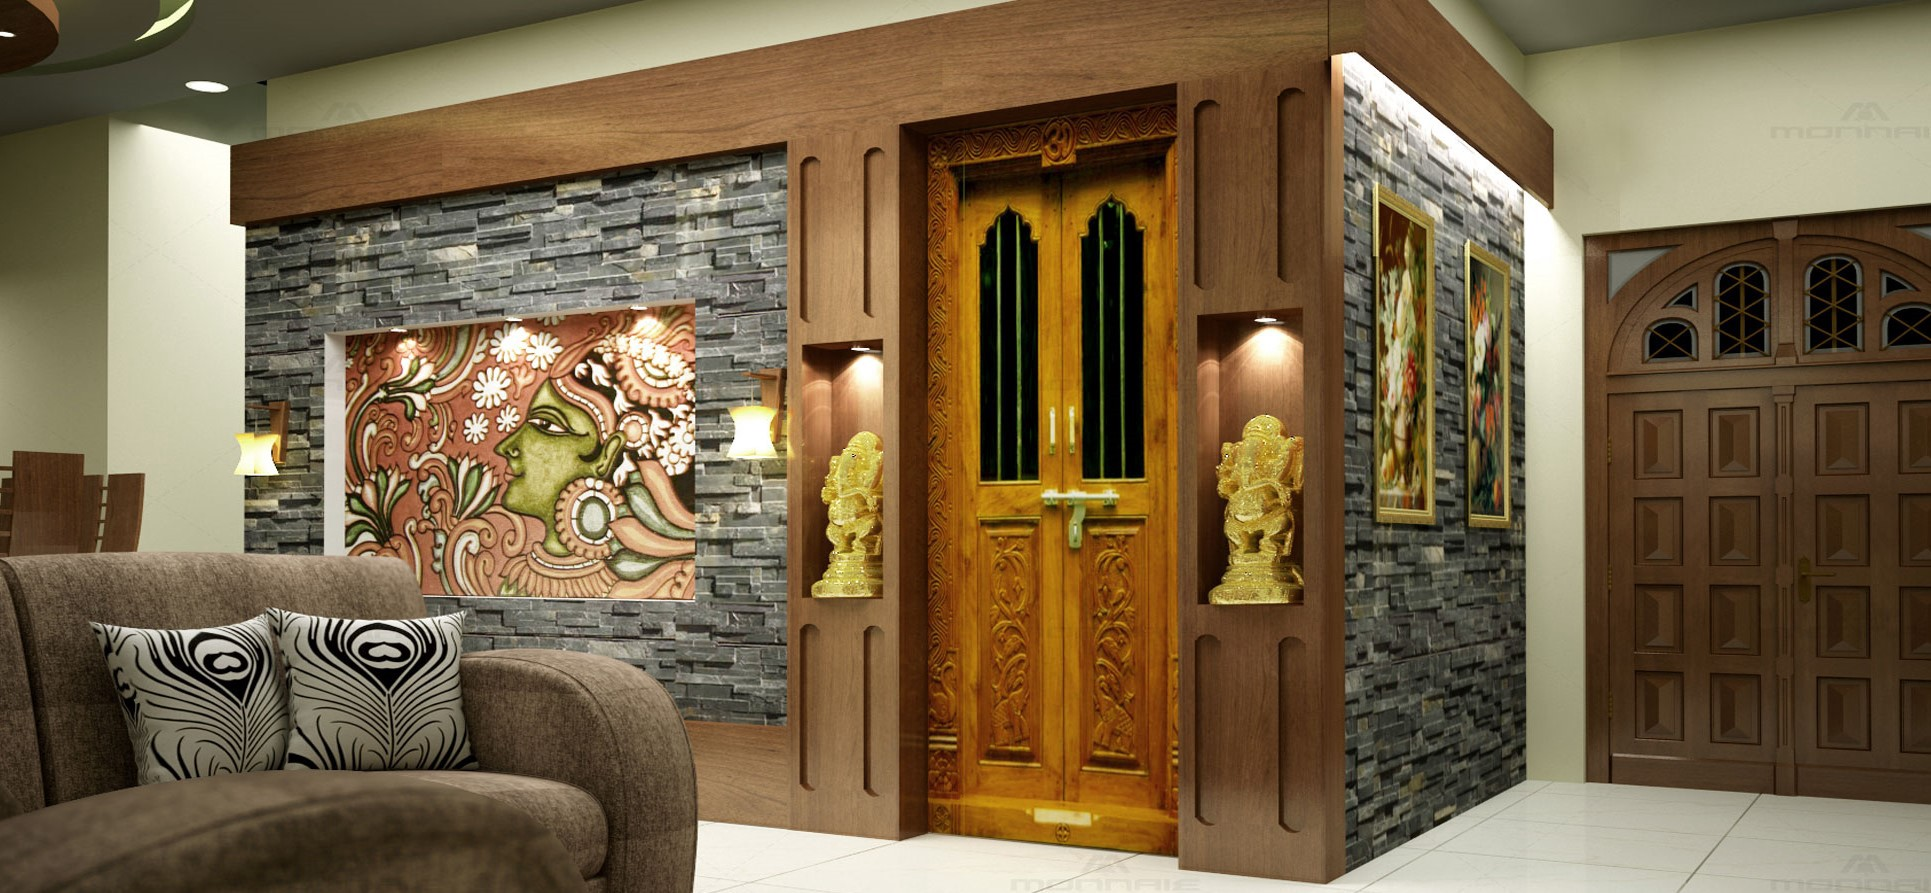 Top 4 Pooja Unit Designs For Your Indian Home Decor By Unplan Social Medium